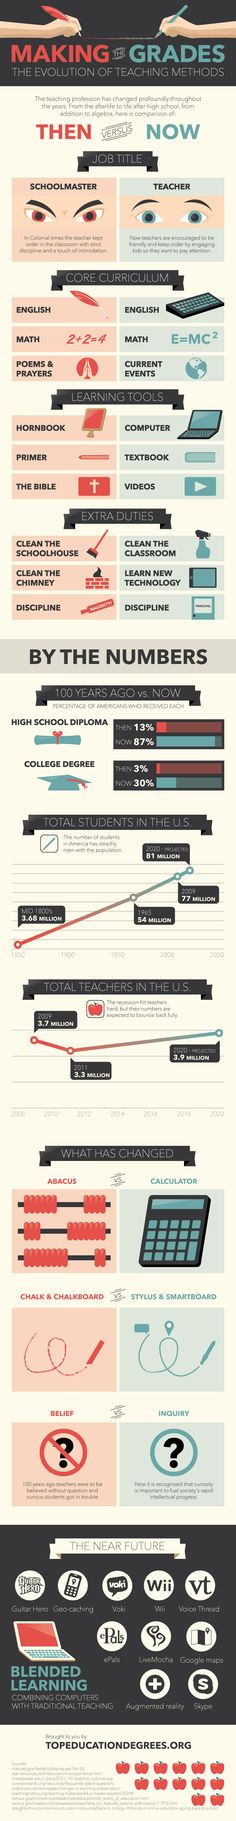 Making the Grades: The Evolution of Teaching Methods #education